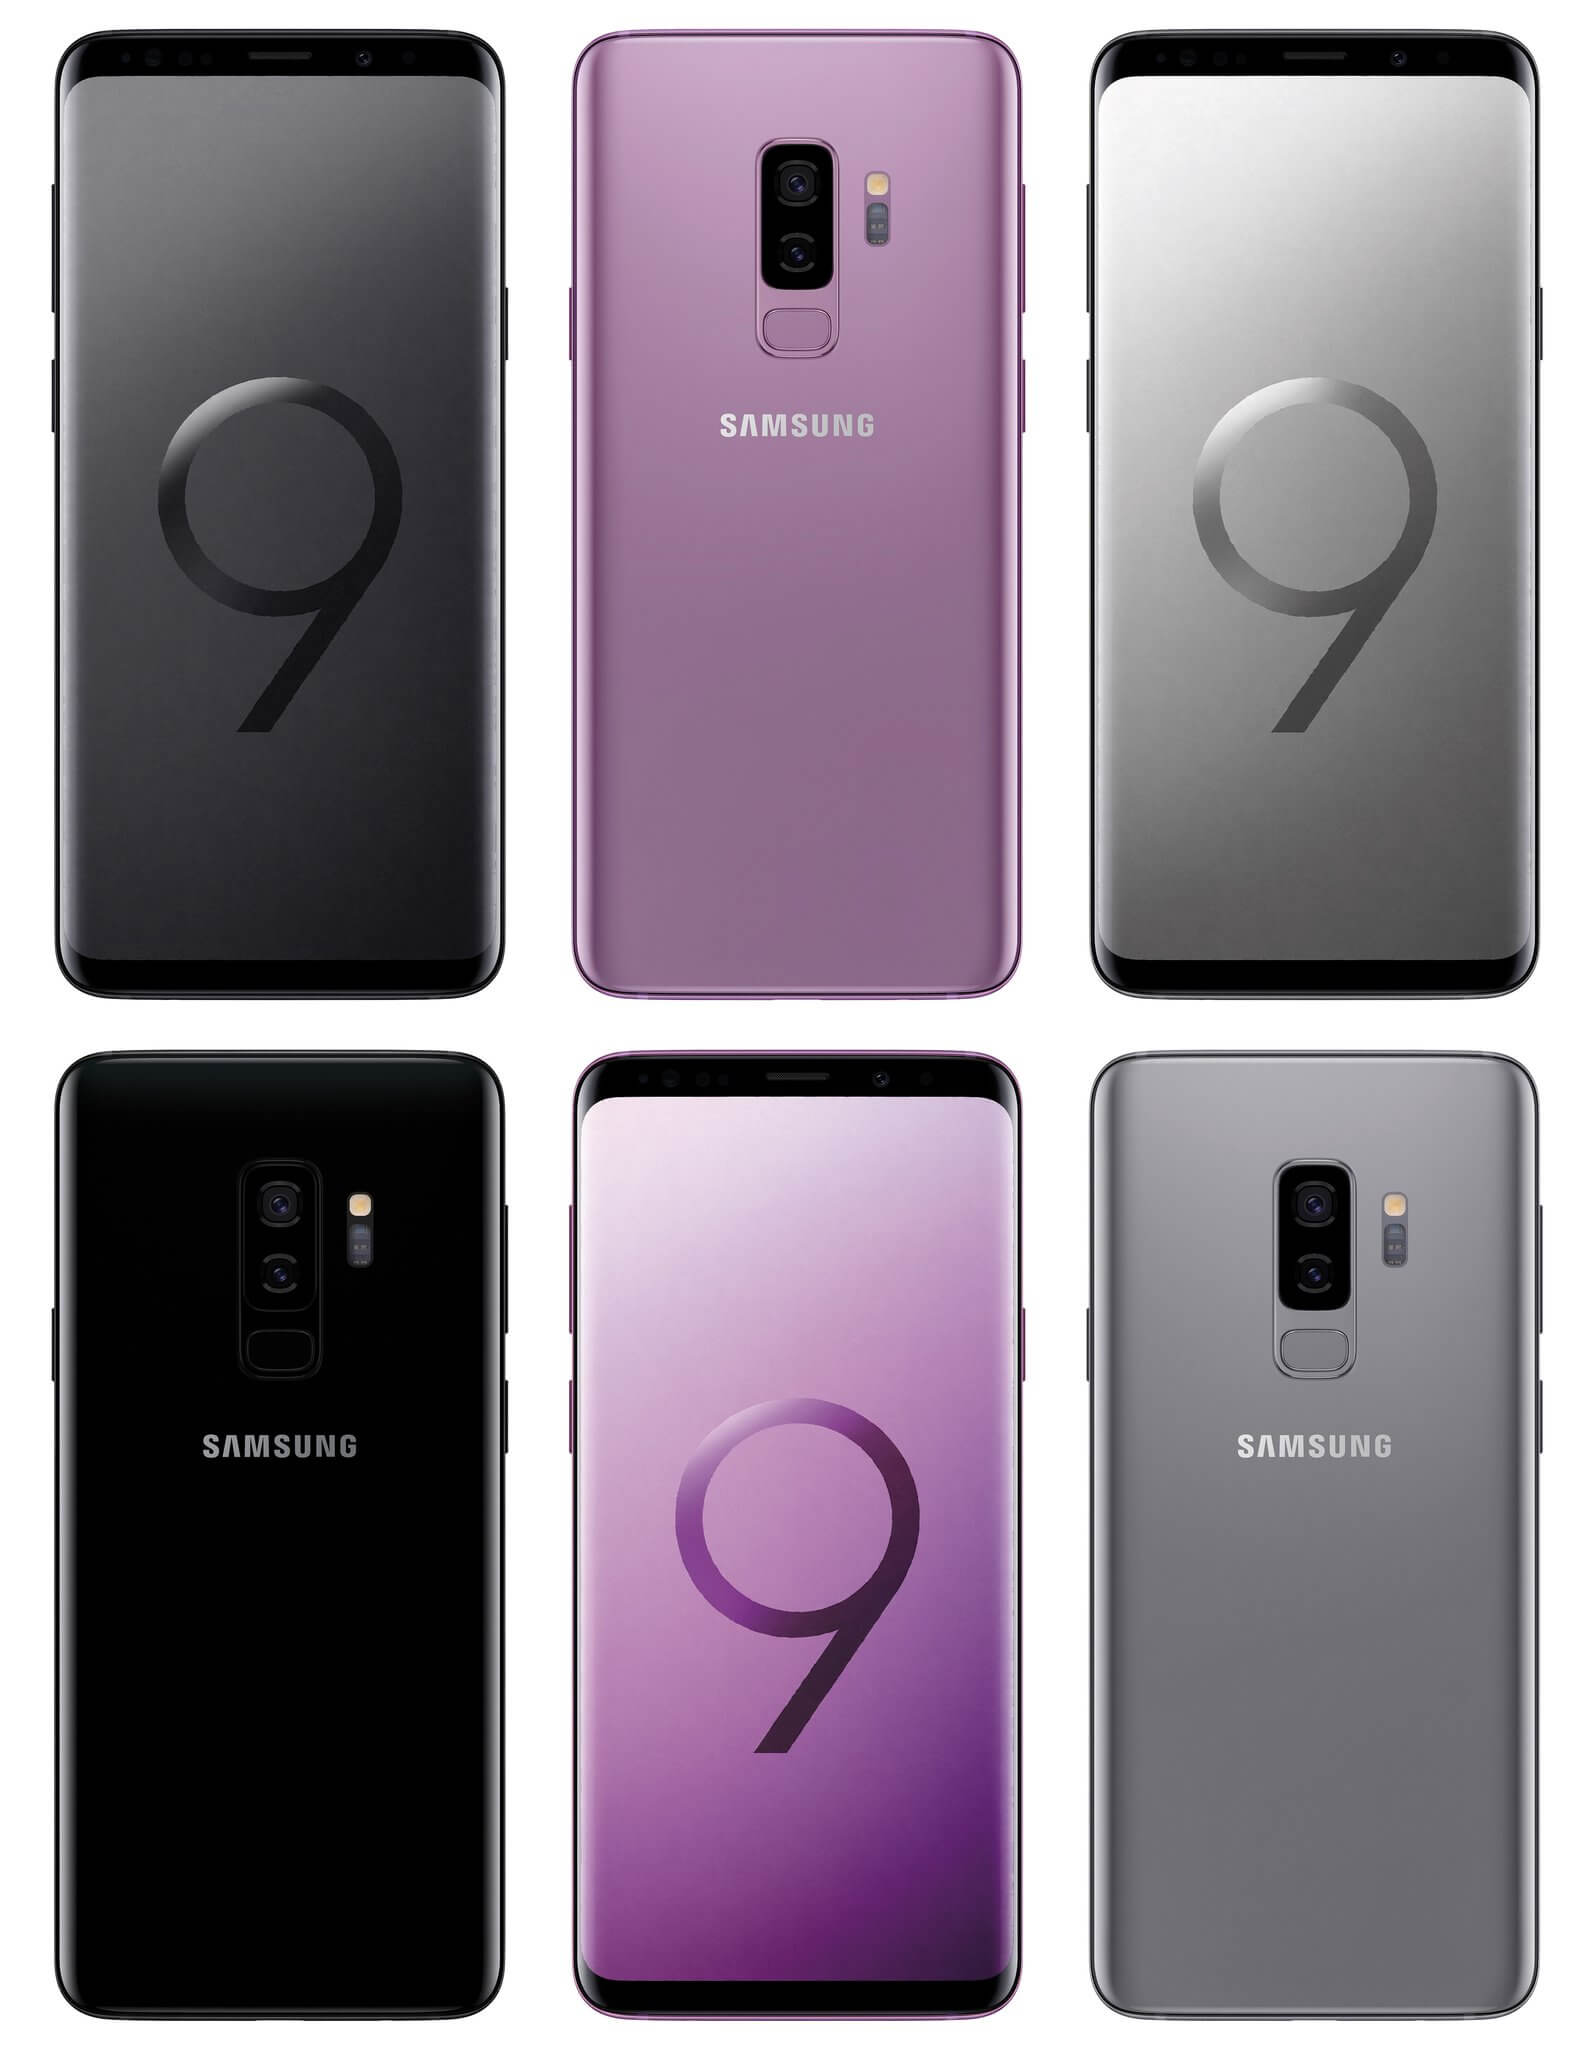 Samsung Galaxy S9+ Android Smartphone